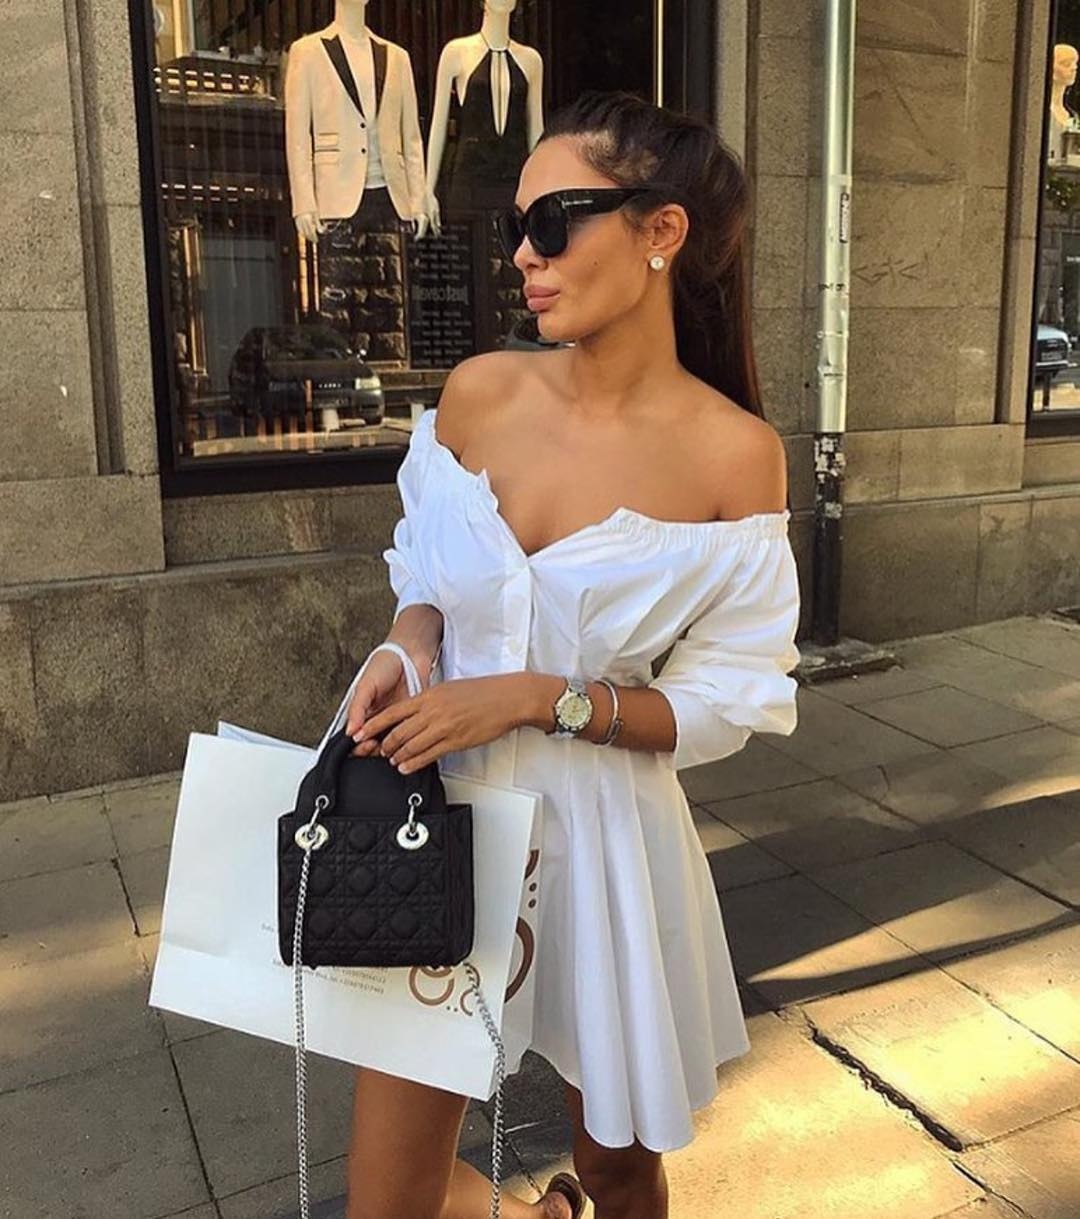 Can I Wear Off Shoulder White Shirtdresses In Italy This Summer 2020